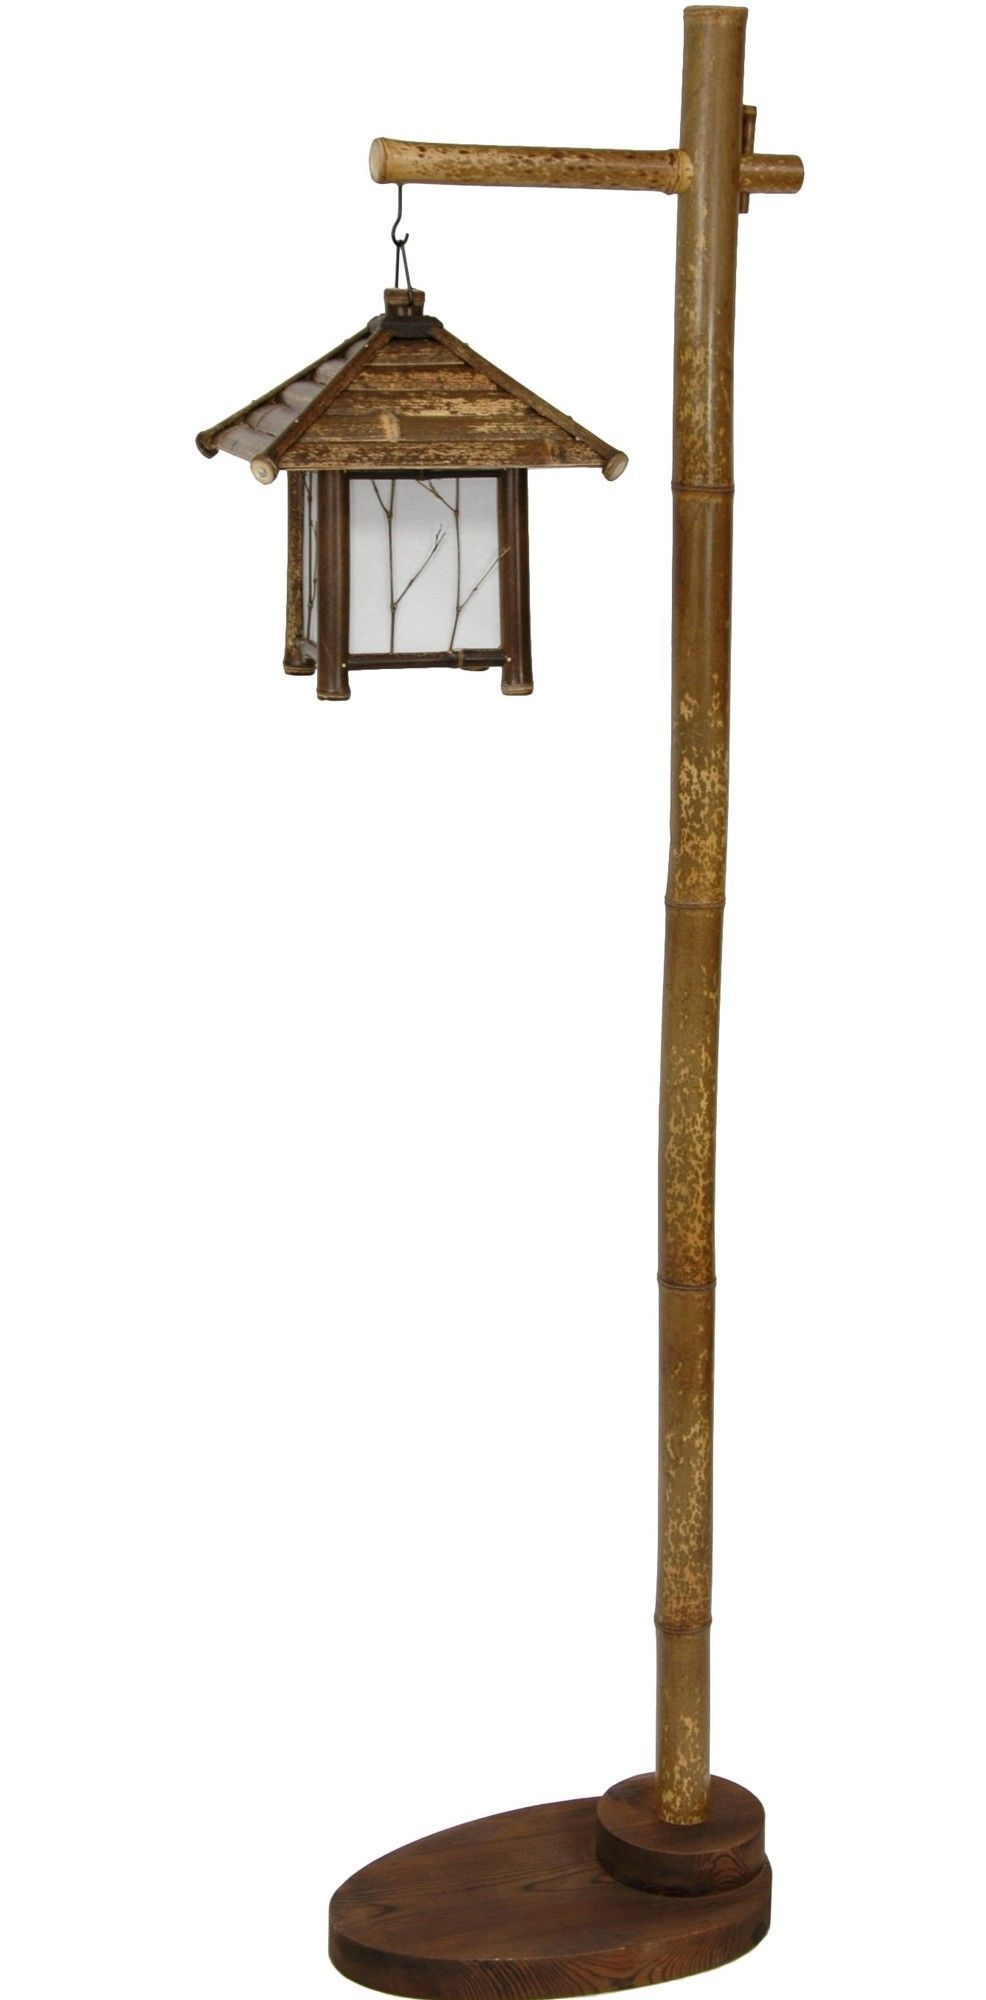 Features Wood And Bamboo Hanging Lantern Stand Ul Approved Wiring A Light Socket American Chord Switch Provides Distinctly Asian Decorative Lighting Solution Authentic Frame S